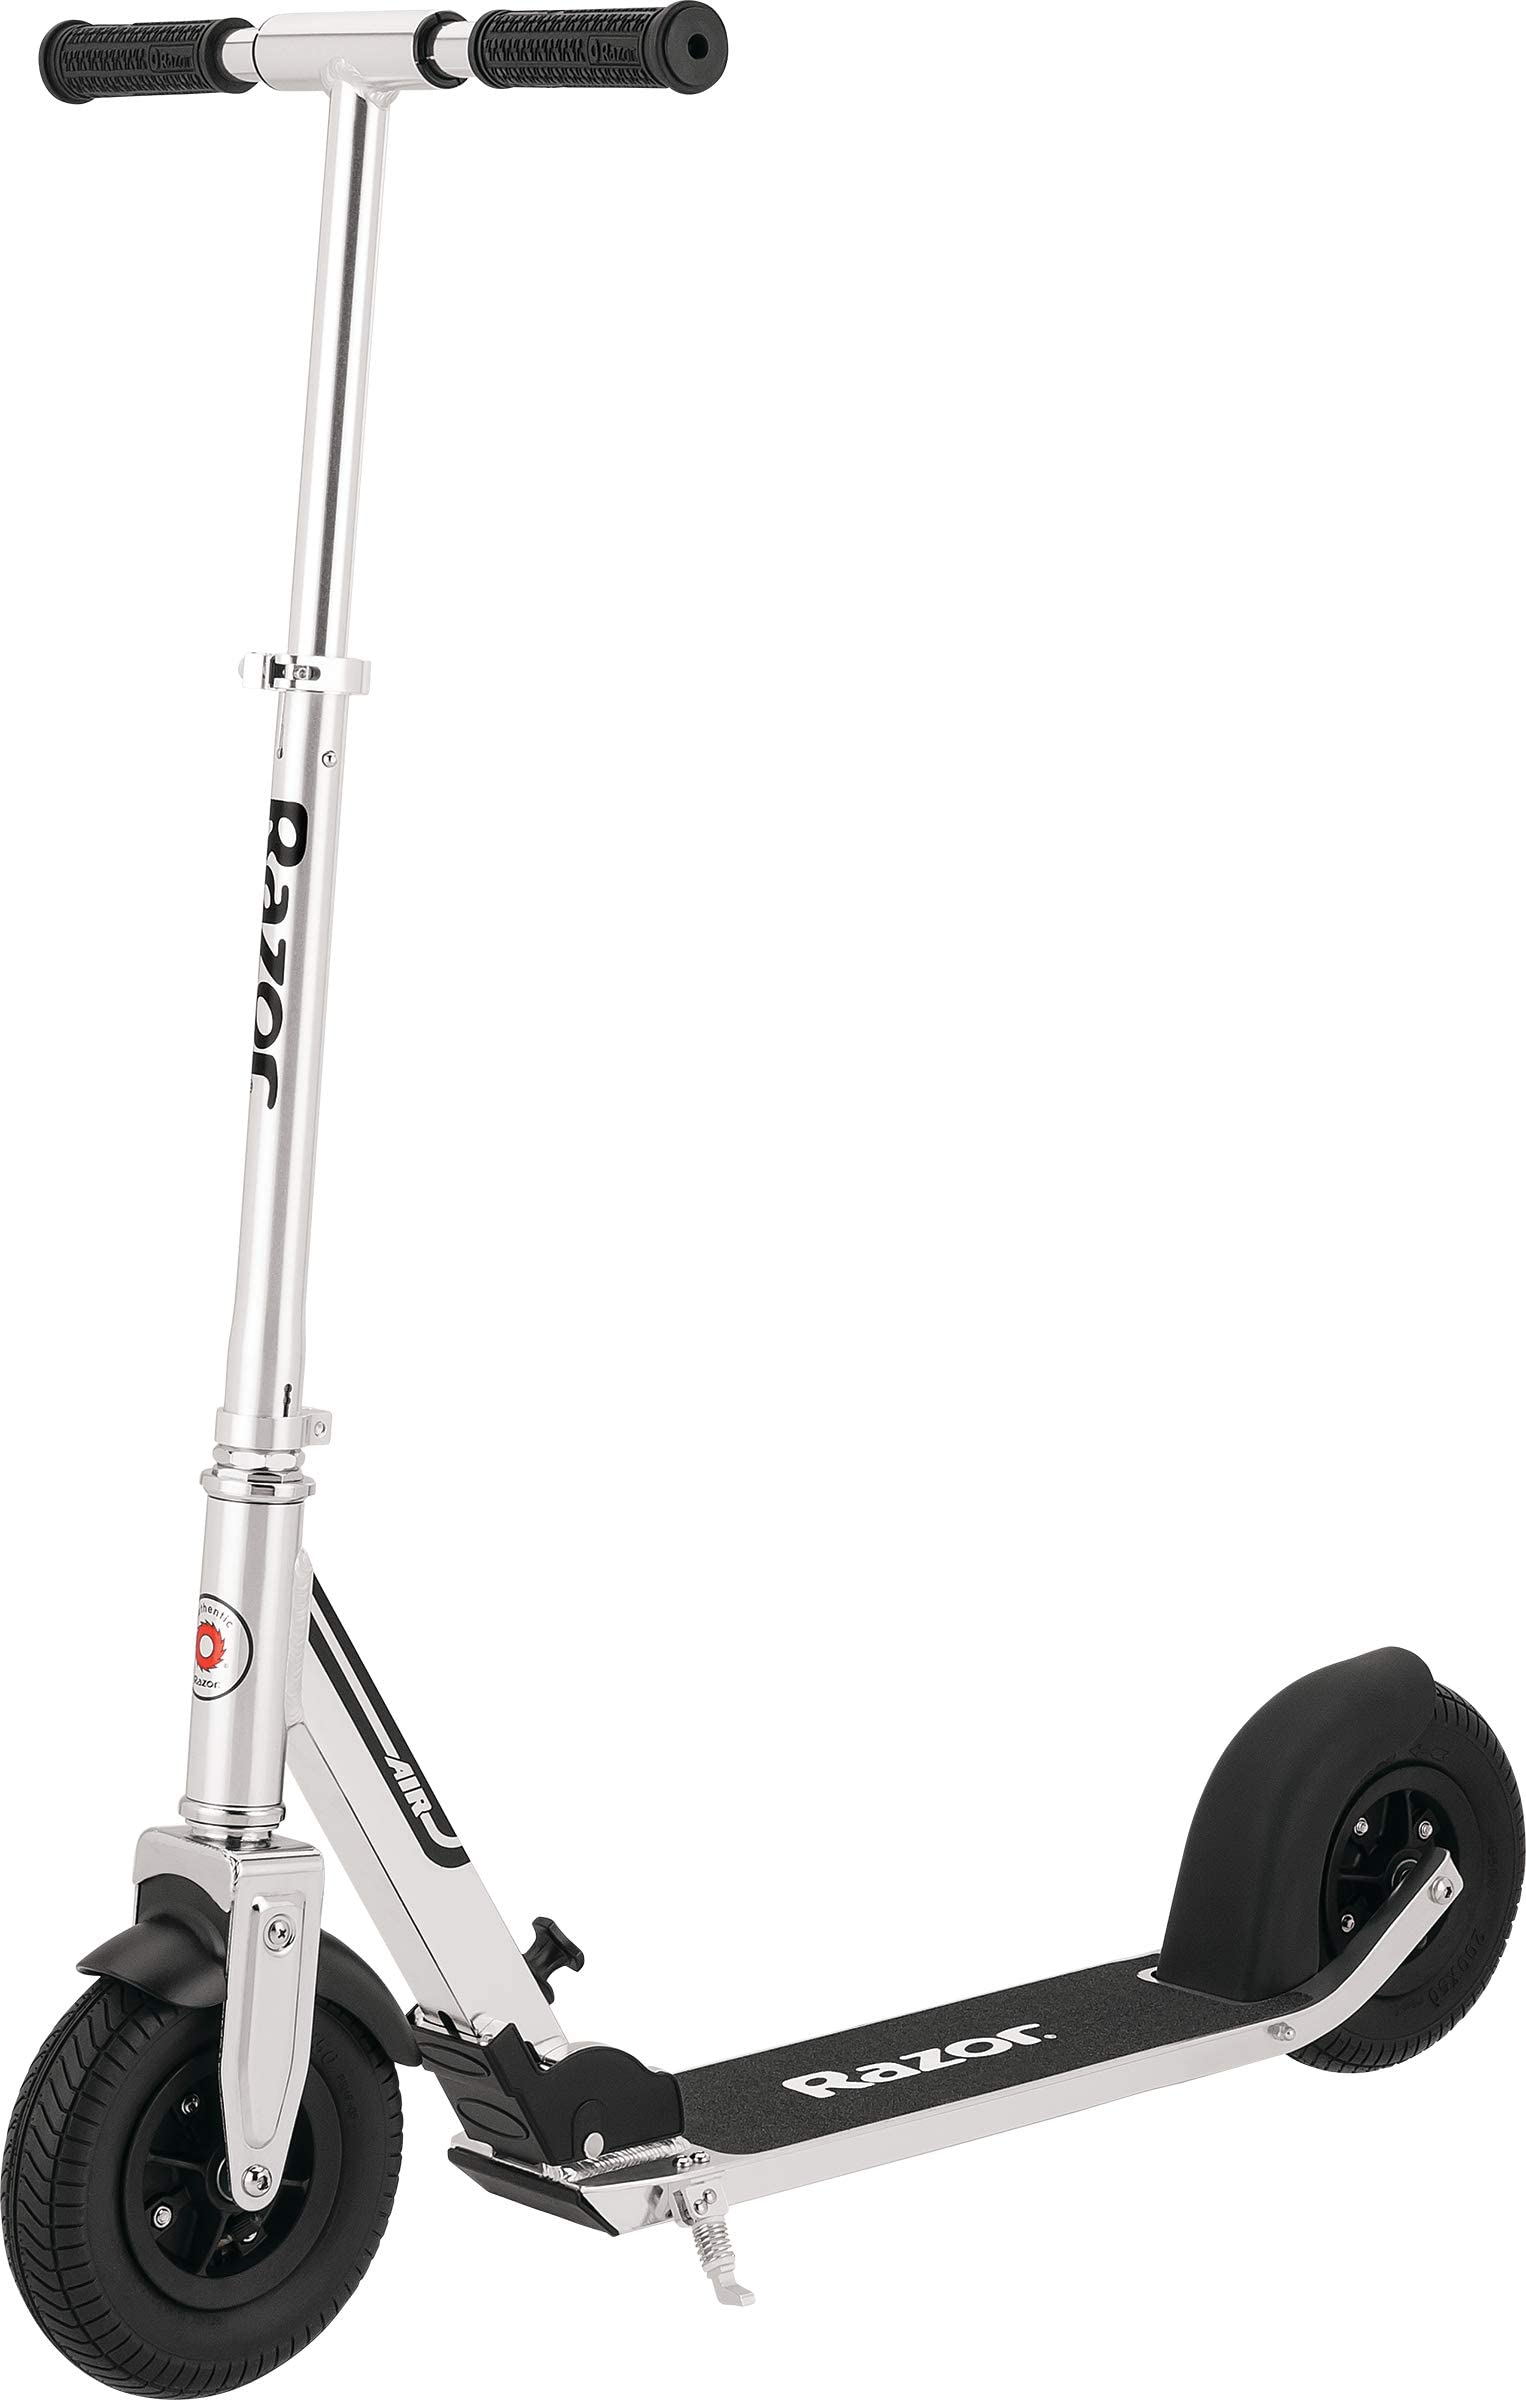 "Razor A5 Air Kick Scooter - 8"" Air-Filled Tires, Anti-Rattle System, Foldable, Adjustable Handlebars, Lightweight, for Riders Up to 220 lbs"